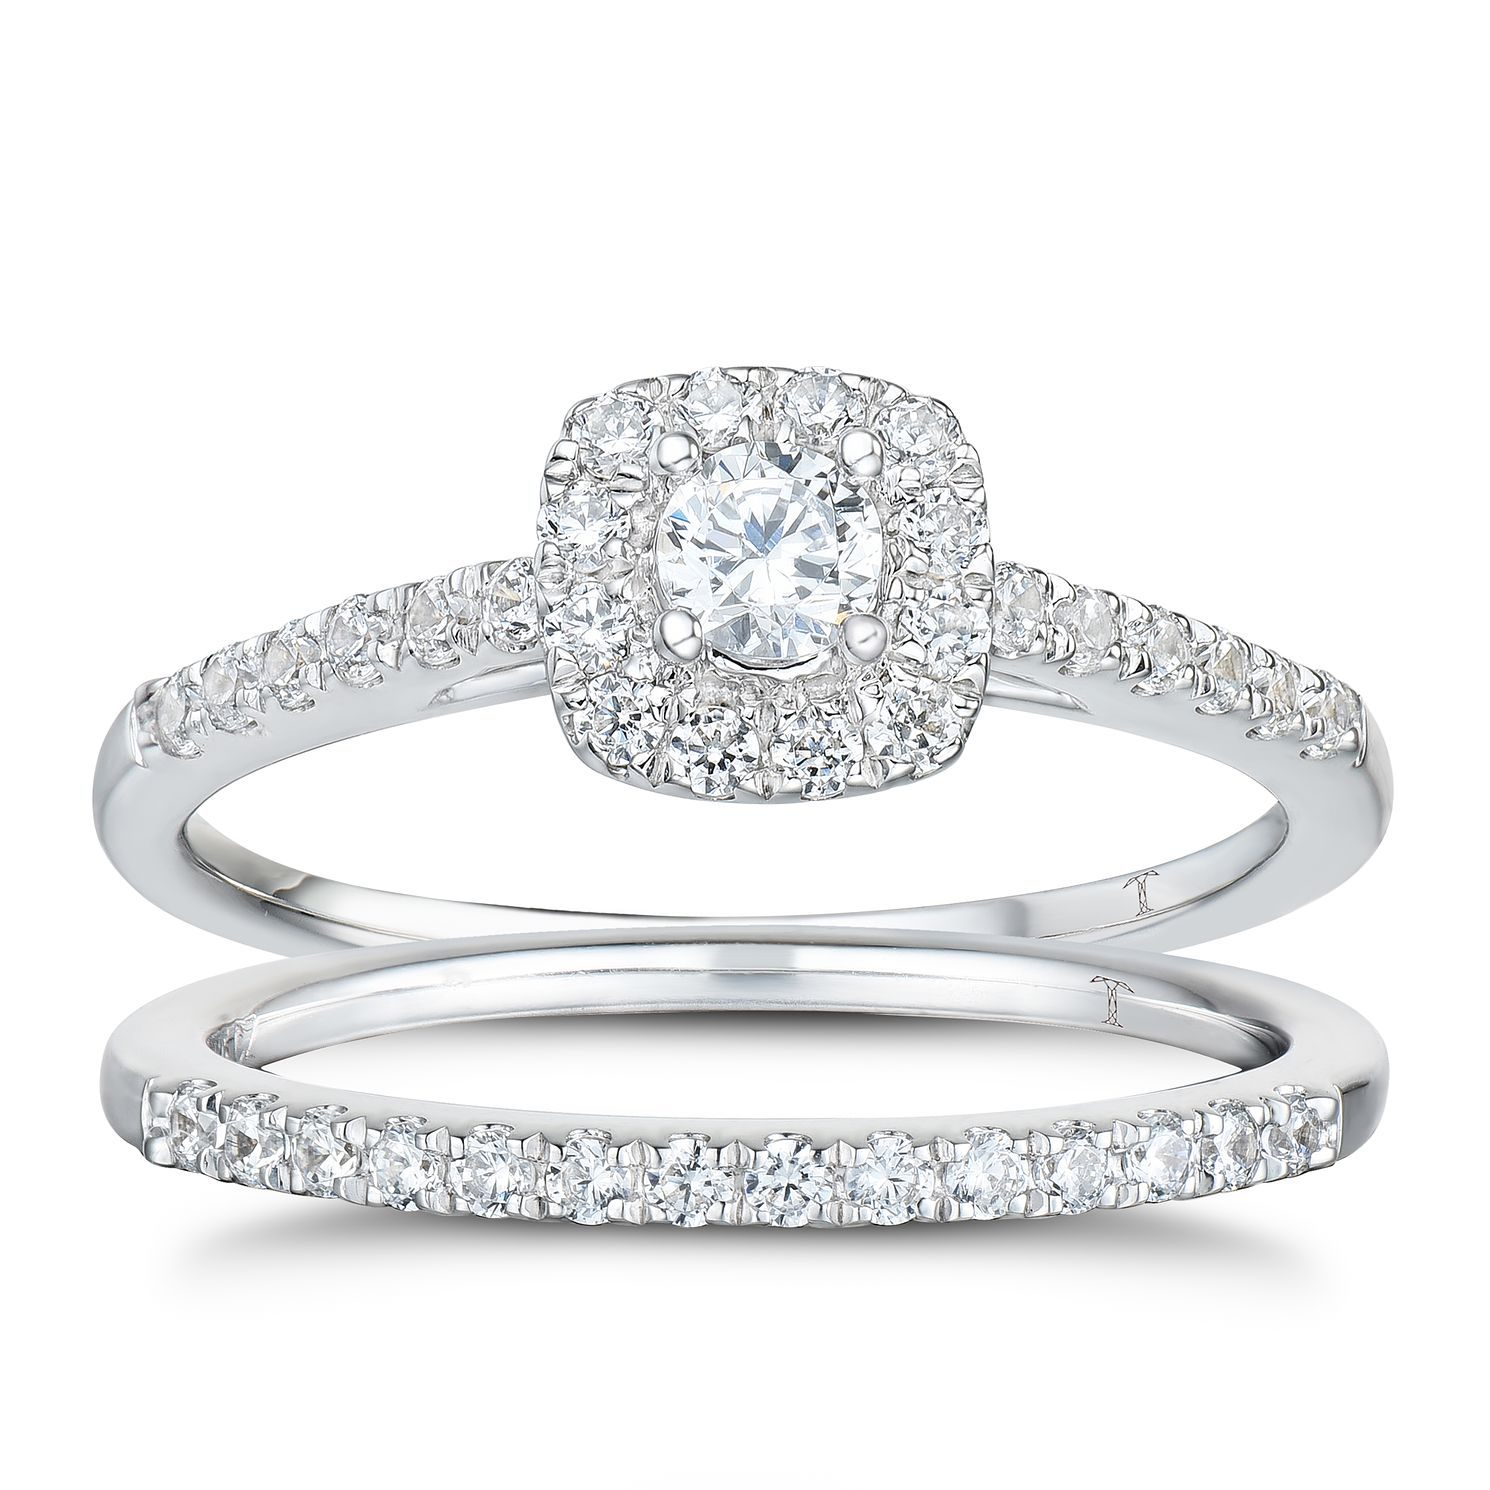 round inspirations rings engagement diamond elegant cut free of wedding tolkowsky shopping fresh ring ideal conflict